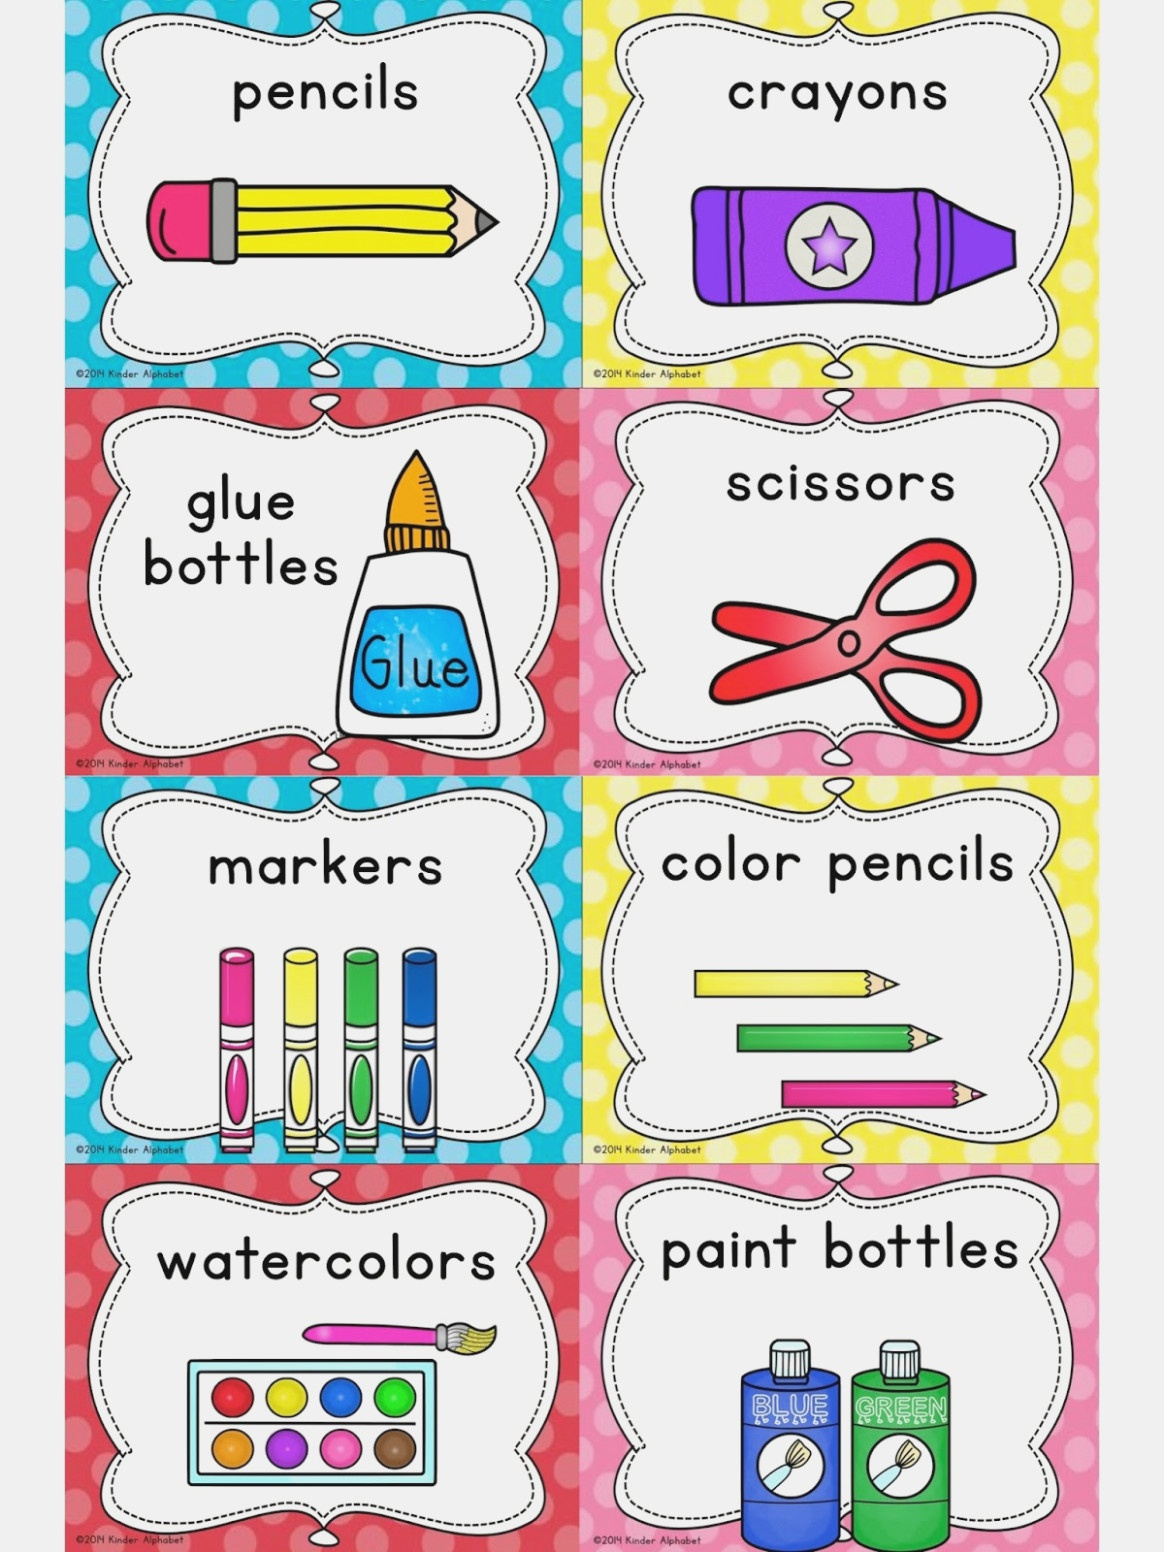 Free Printable Classroom Signs And Labels Free Printable Classroom - Free Printable Classroom Signs And Labels